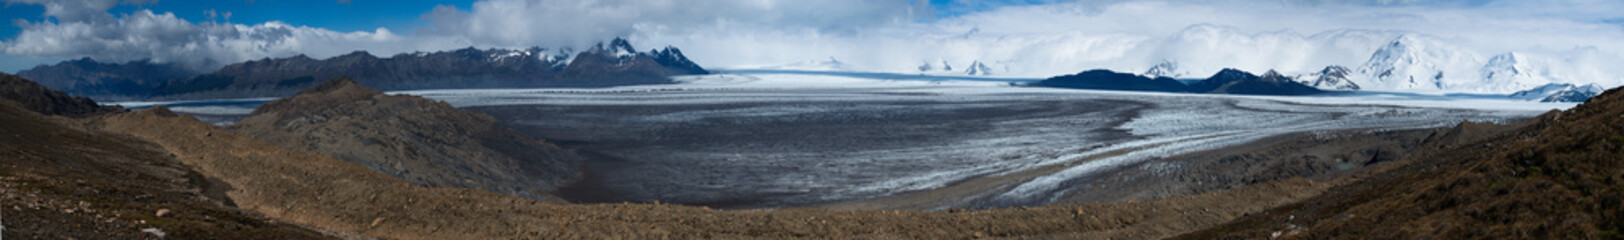 Long Patagonian panorama in the south of Argentina